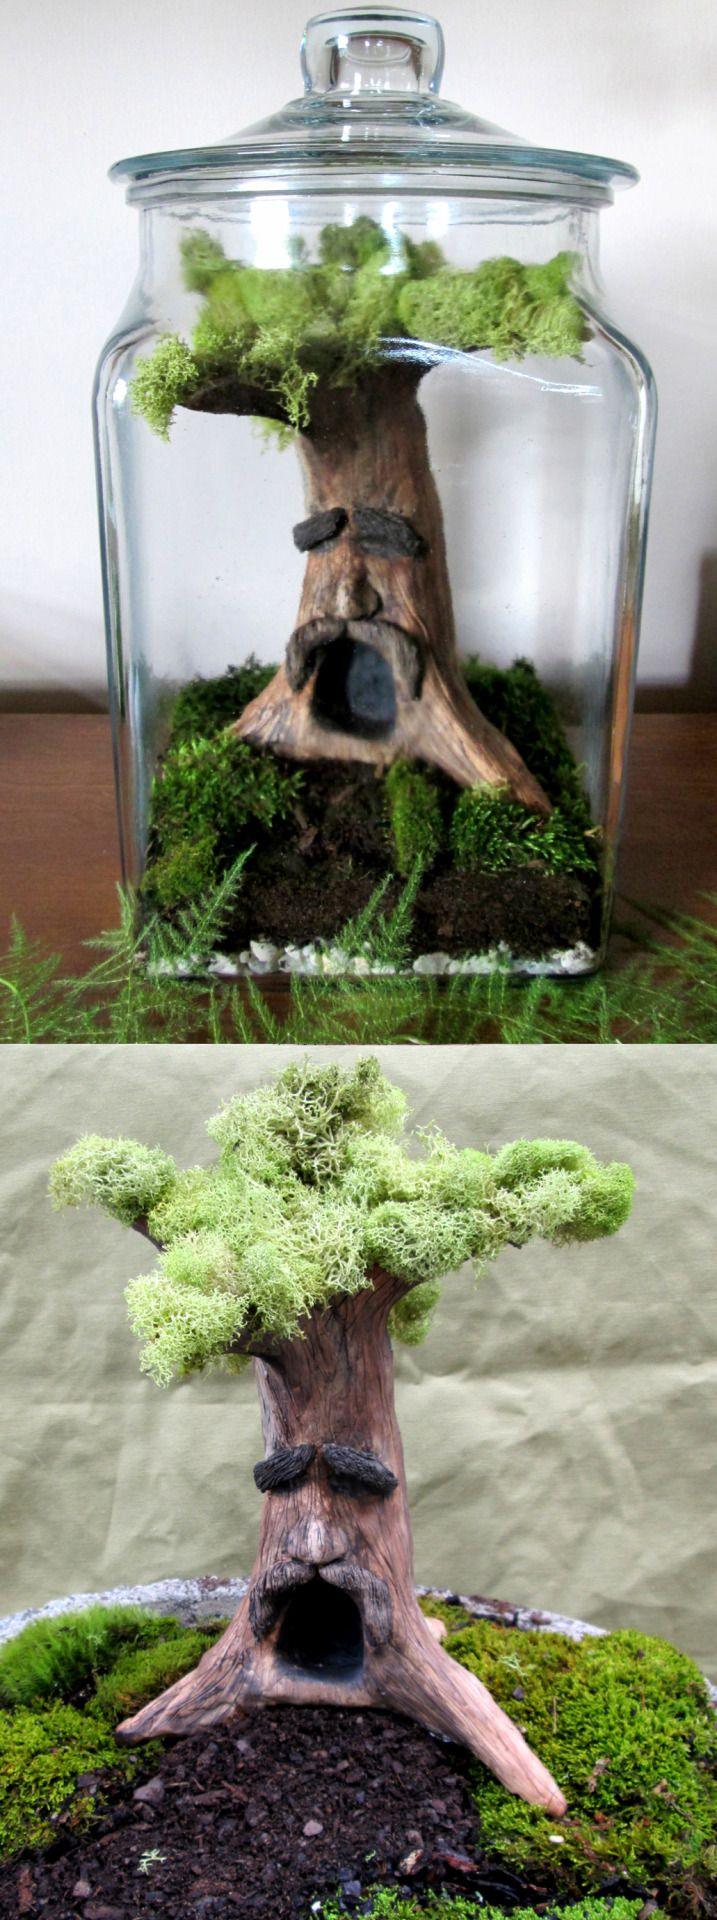 Zelda Great Deku Tree Terrarium Own a piece of Hyrule with a Great Deku Tree terrarium! Includes everything you need to create and display your very own lively Legend of Zelda themed garden that is...